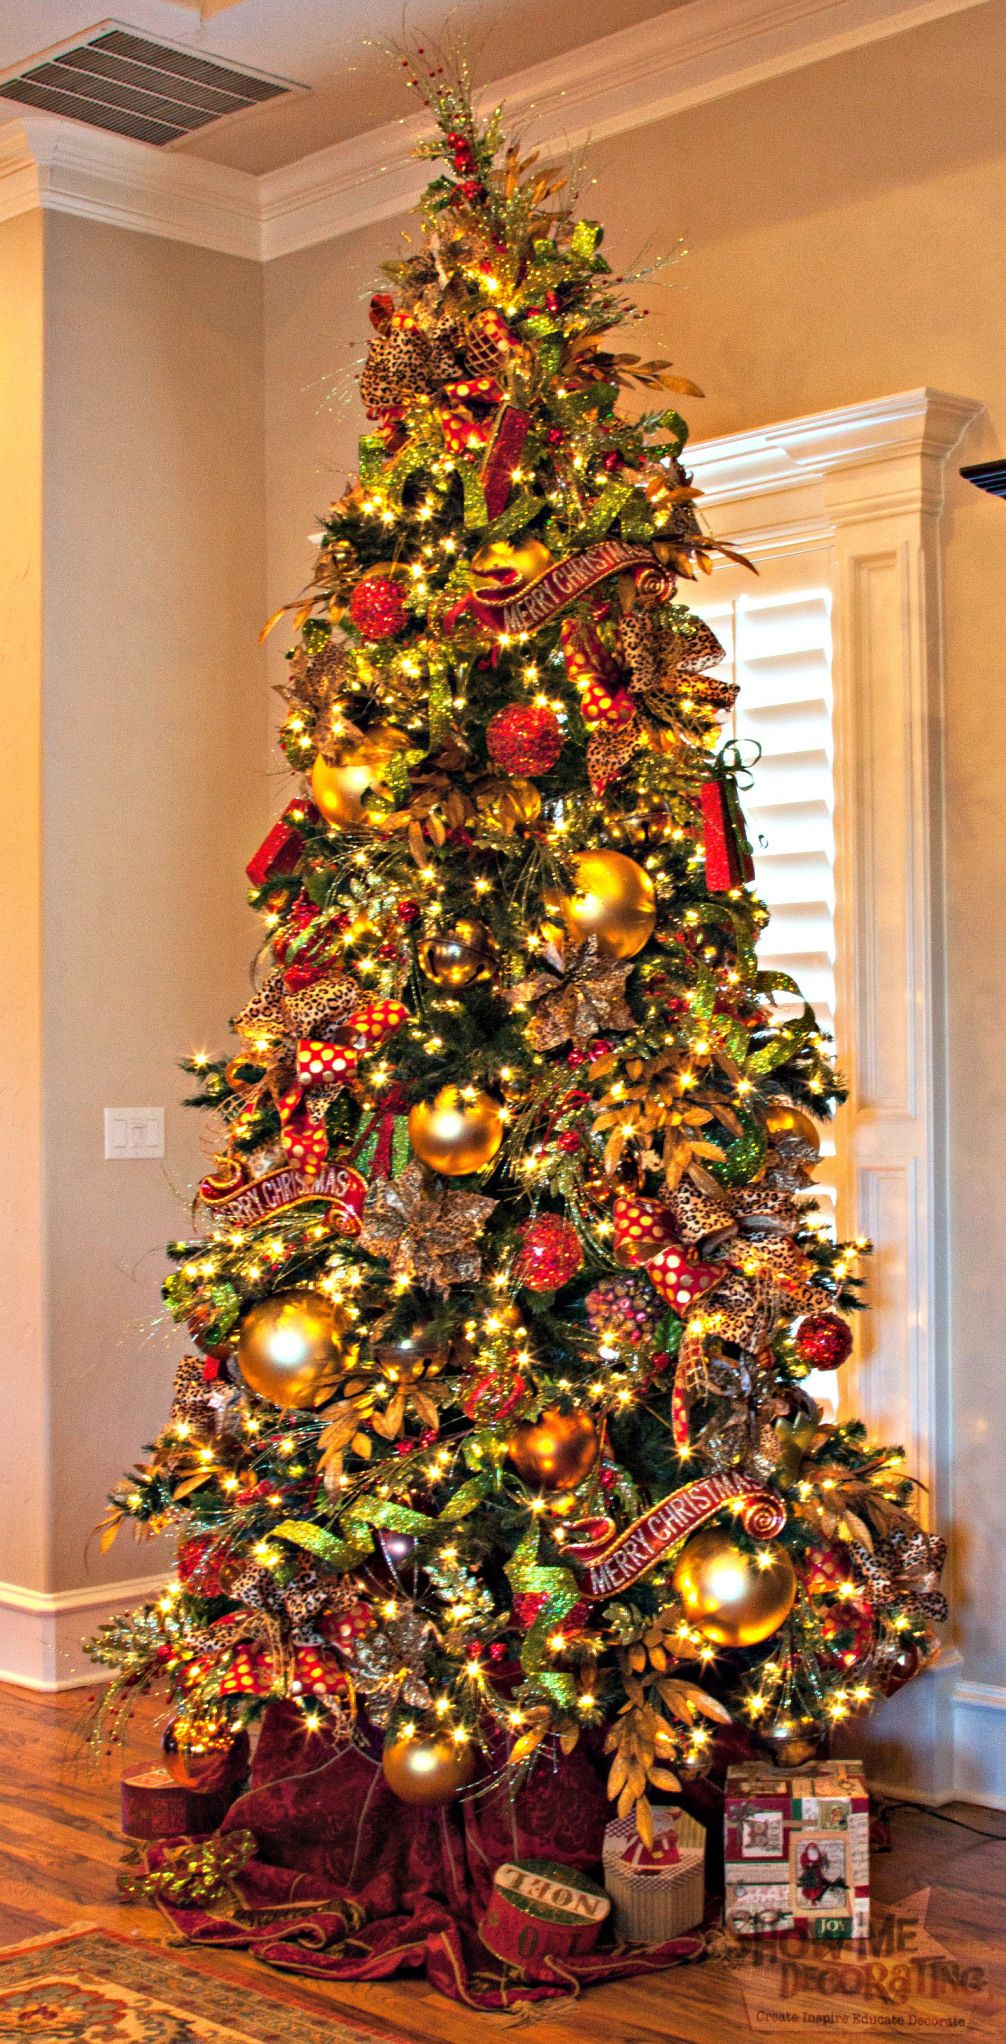 Decorated Xmas Trees Ideas